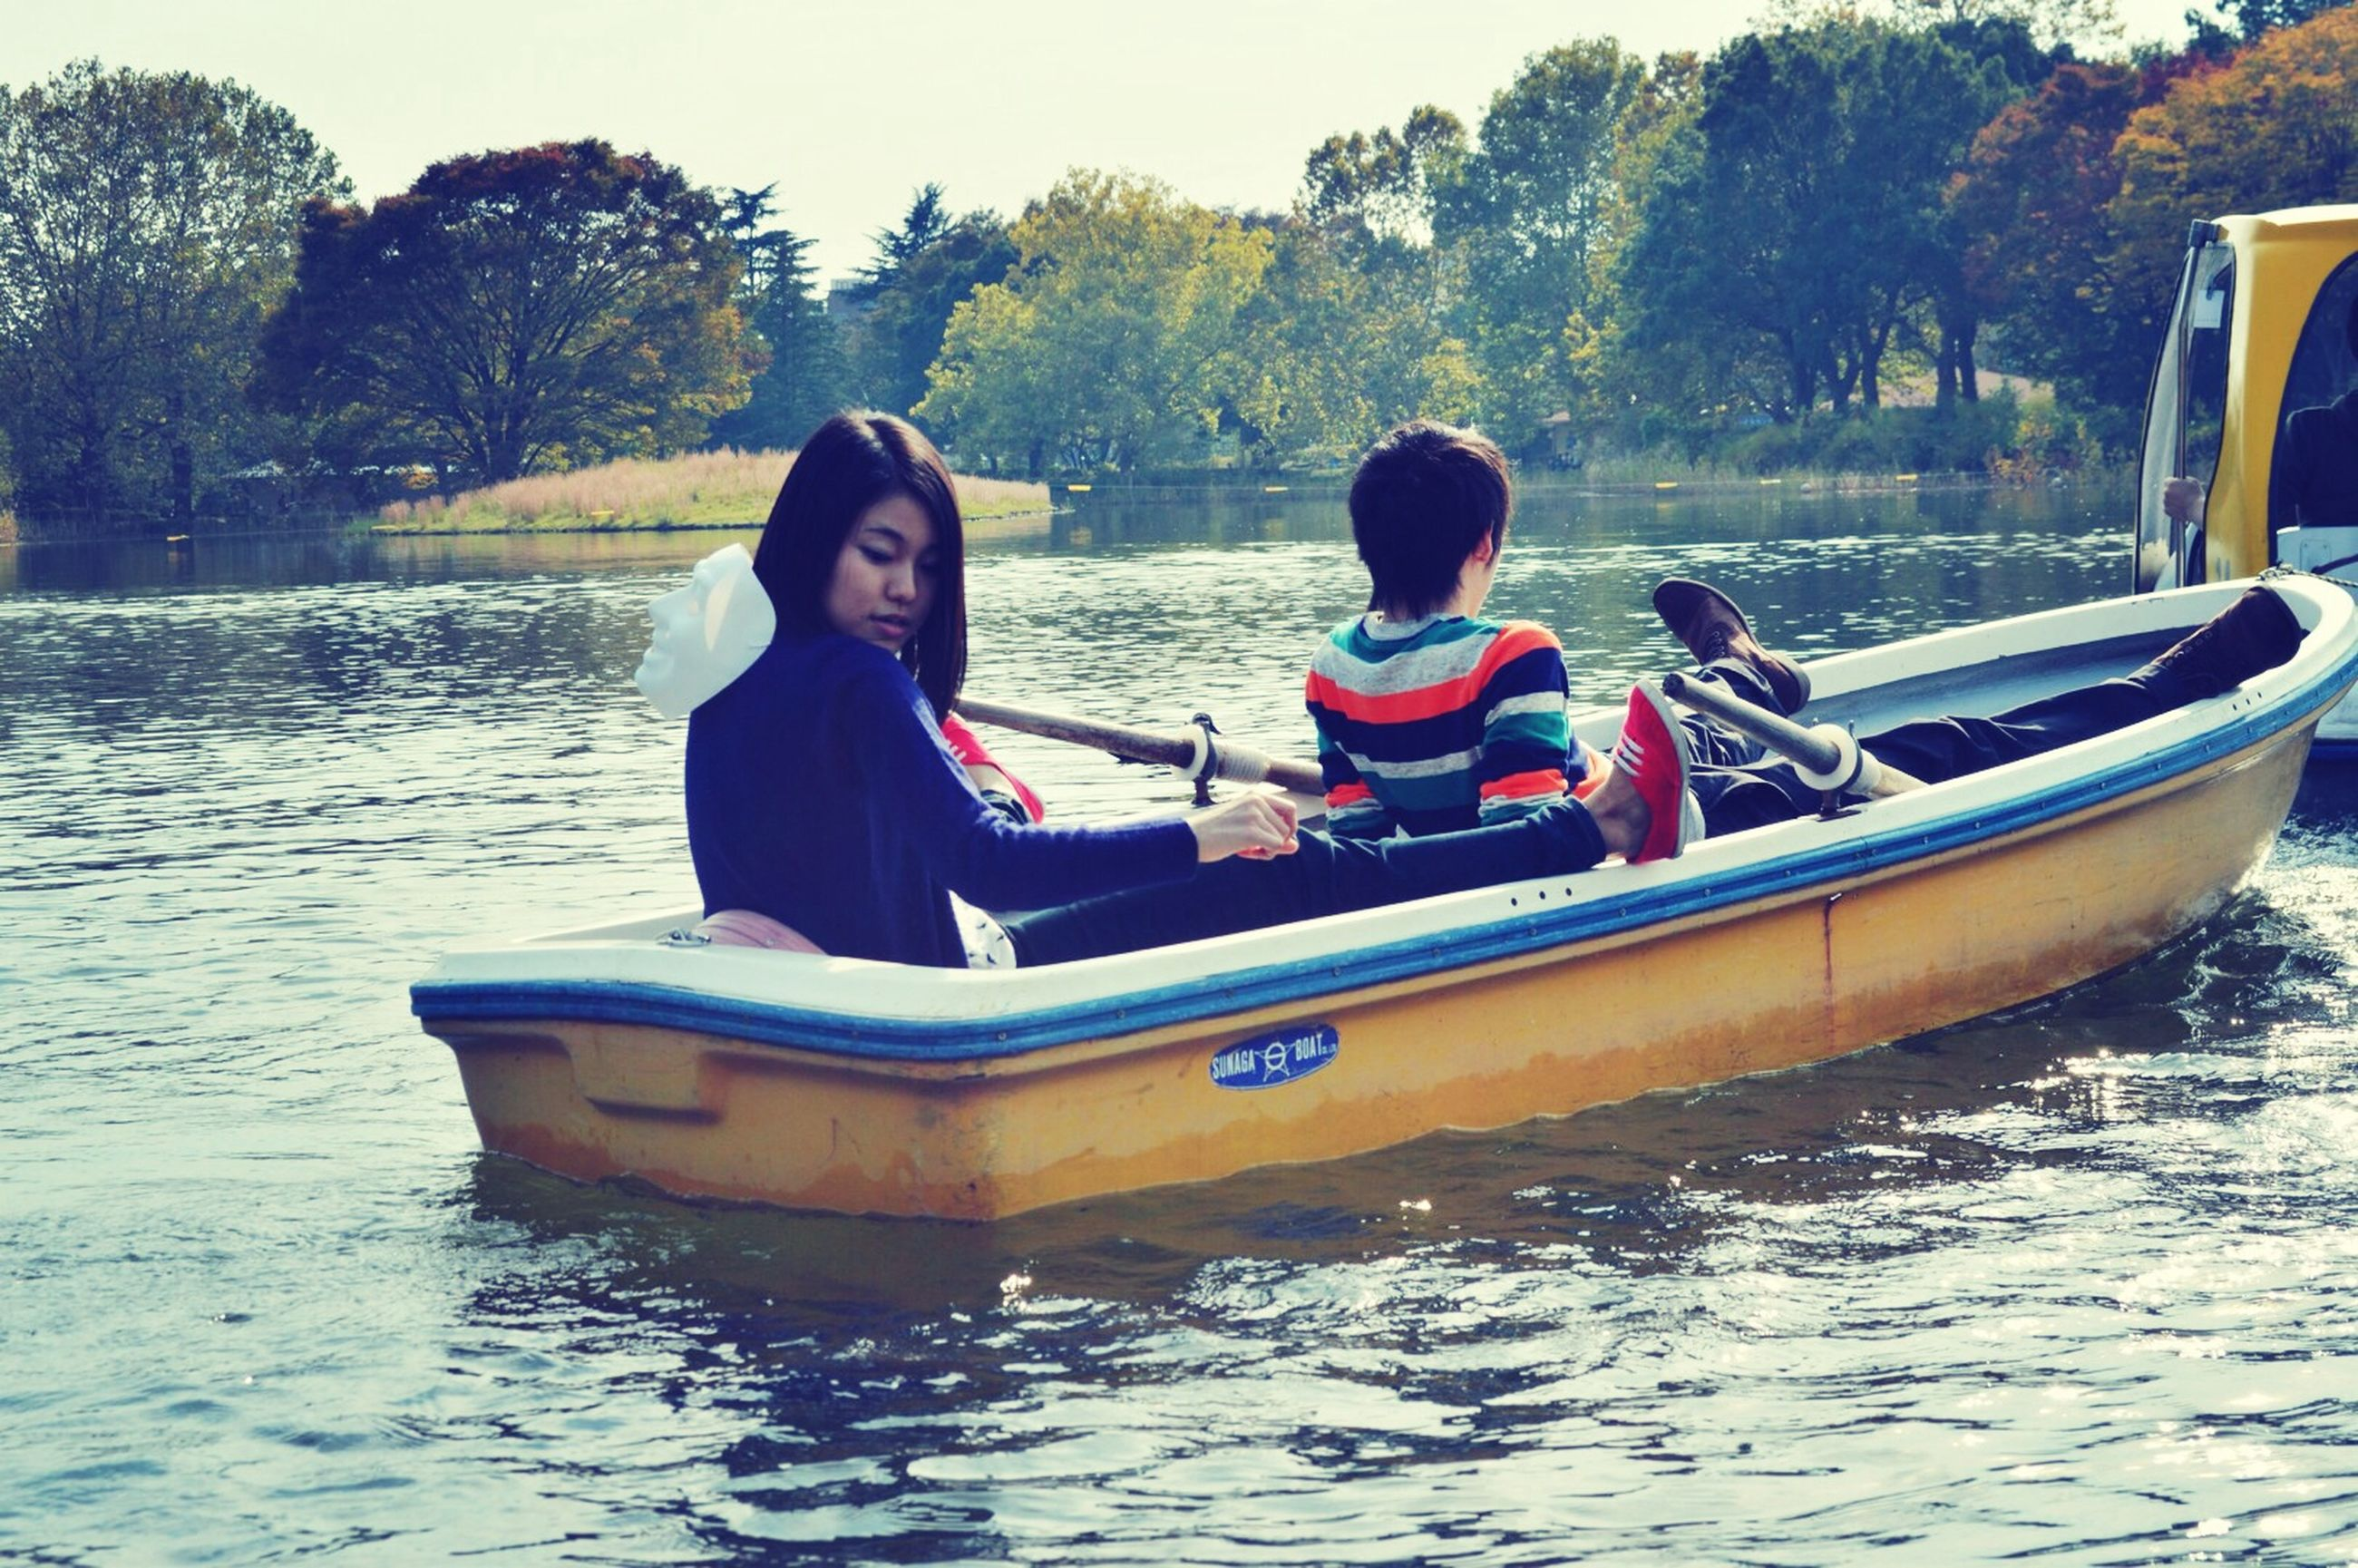 water, transportation, nautical vessel, mode of transport, lifestyles, leisure activity, tree, boat, person, waterfront, vacations, sitting, travel, lake, togetherness, river, young adult